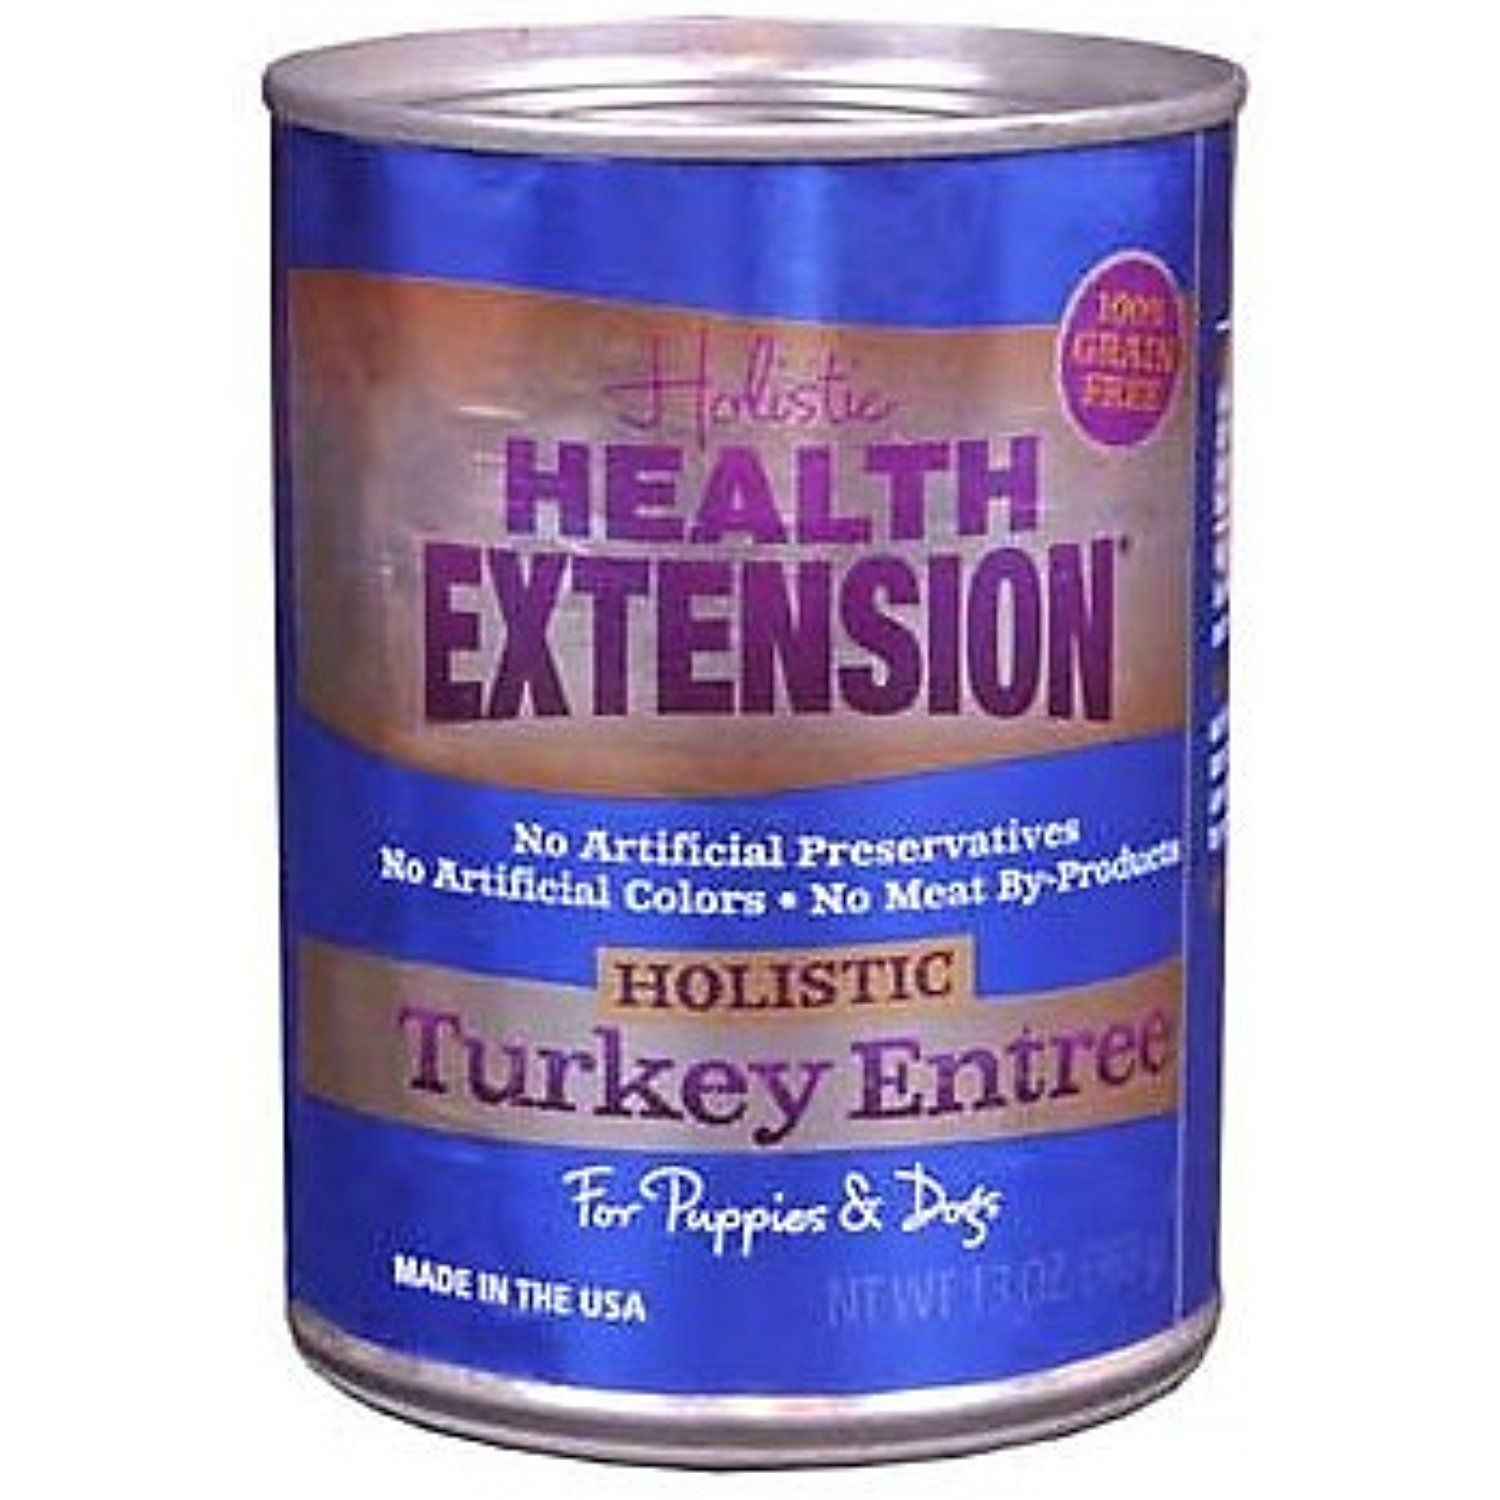 Health Extension Turkey Can Dog Food 12 Pack You can